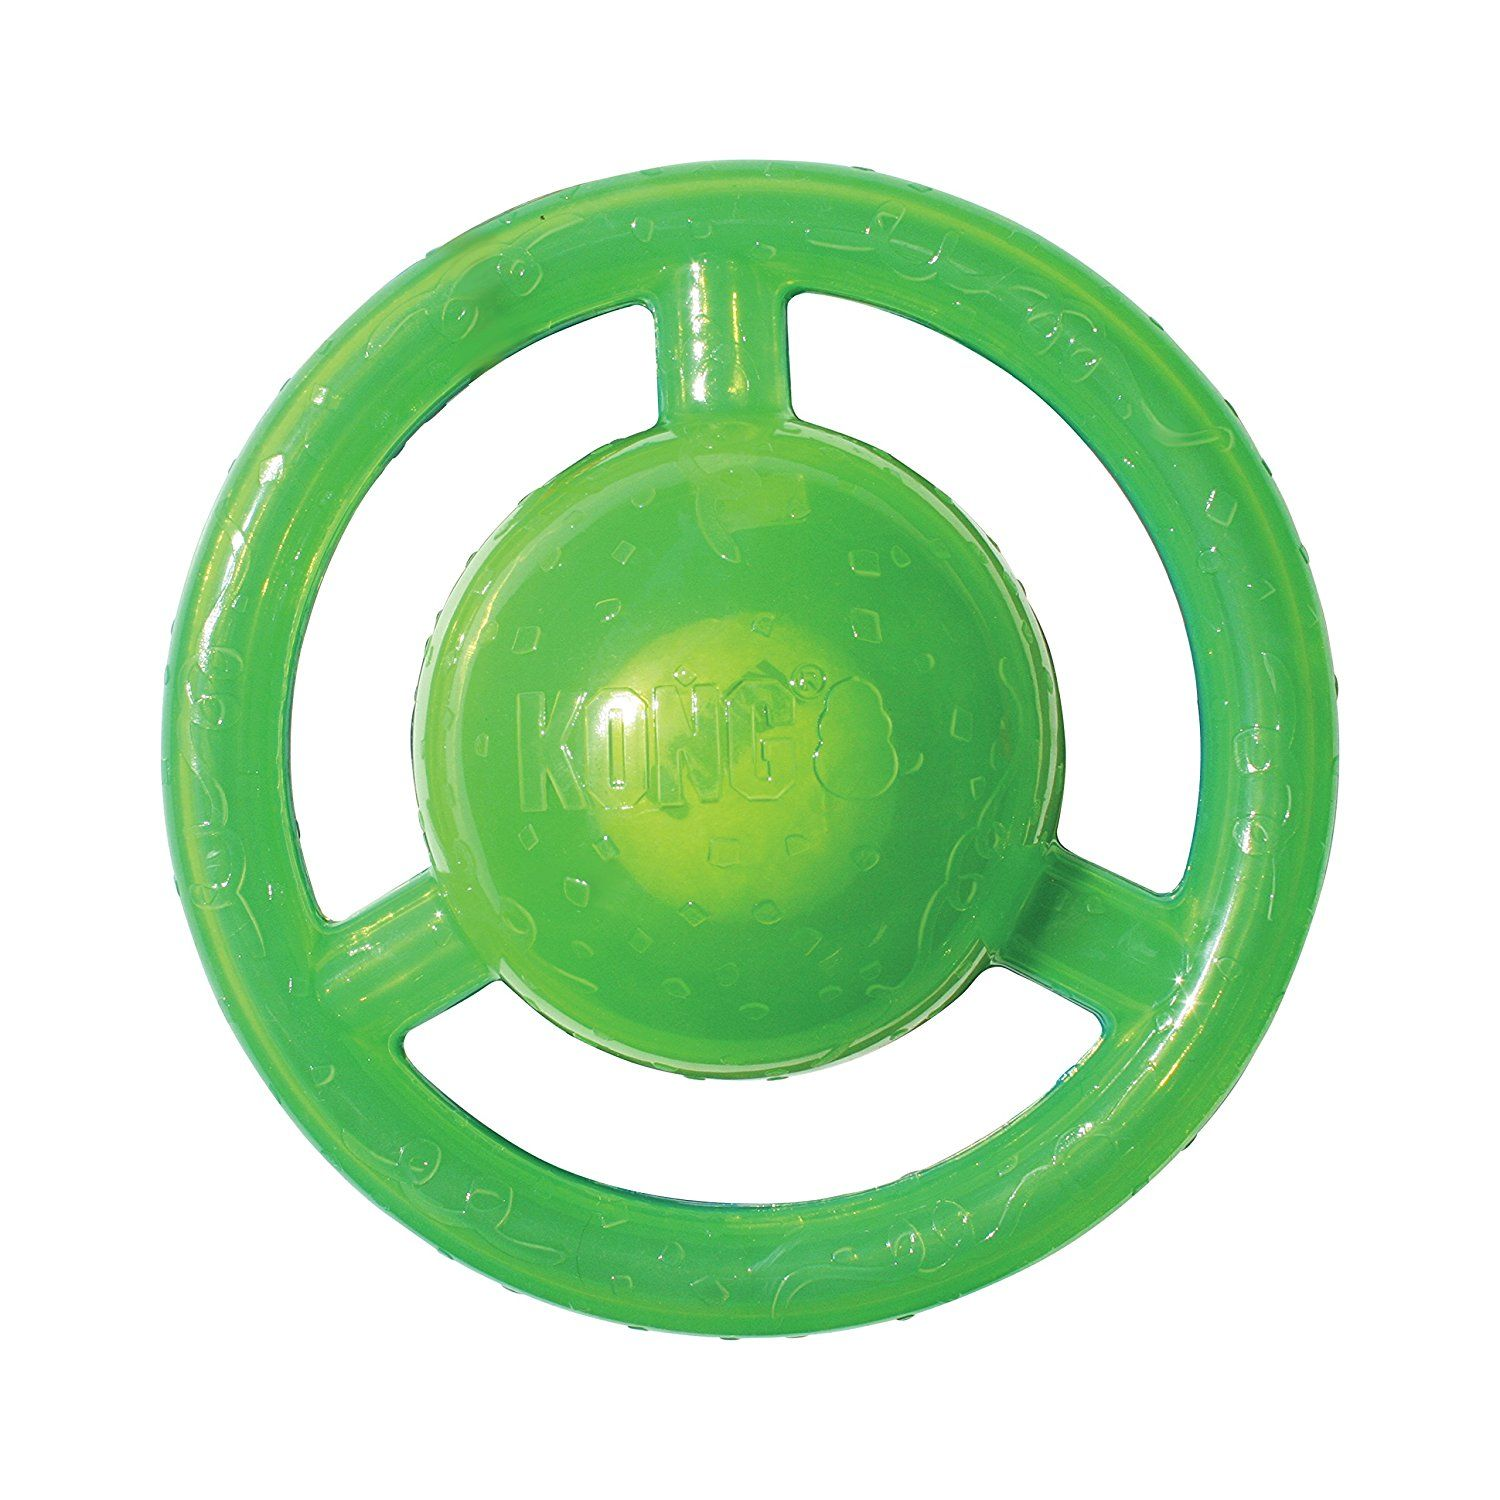 Kong Jumbler Disc Dog Toy See This Great Image This Is An